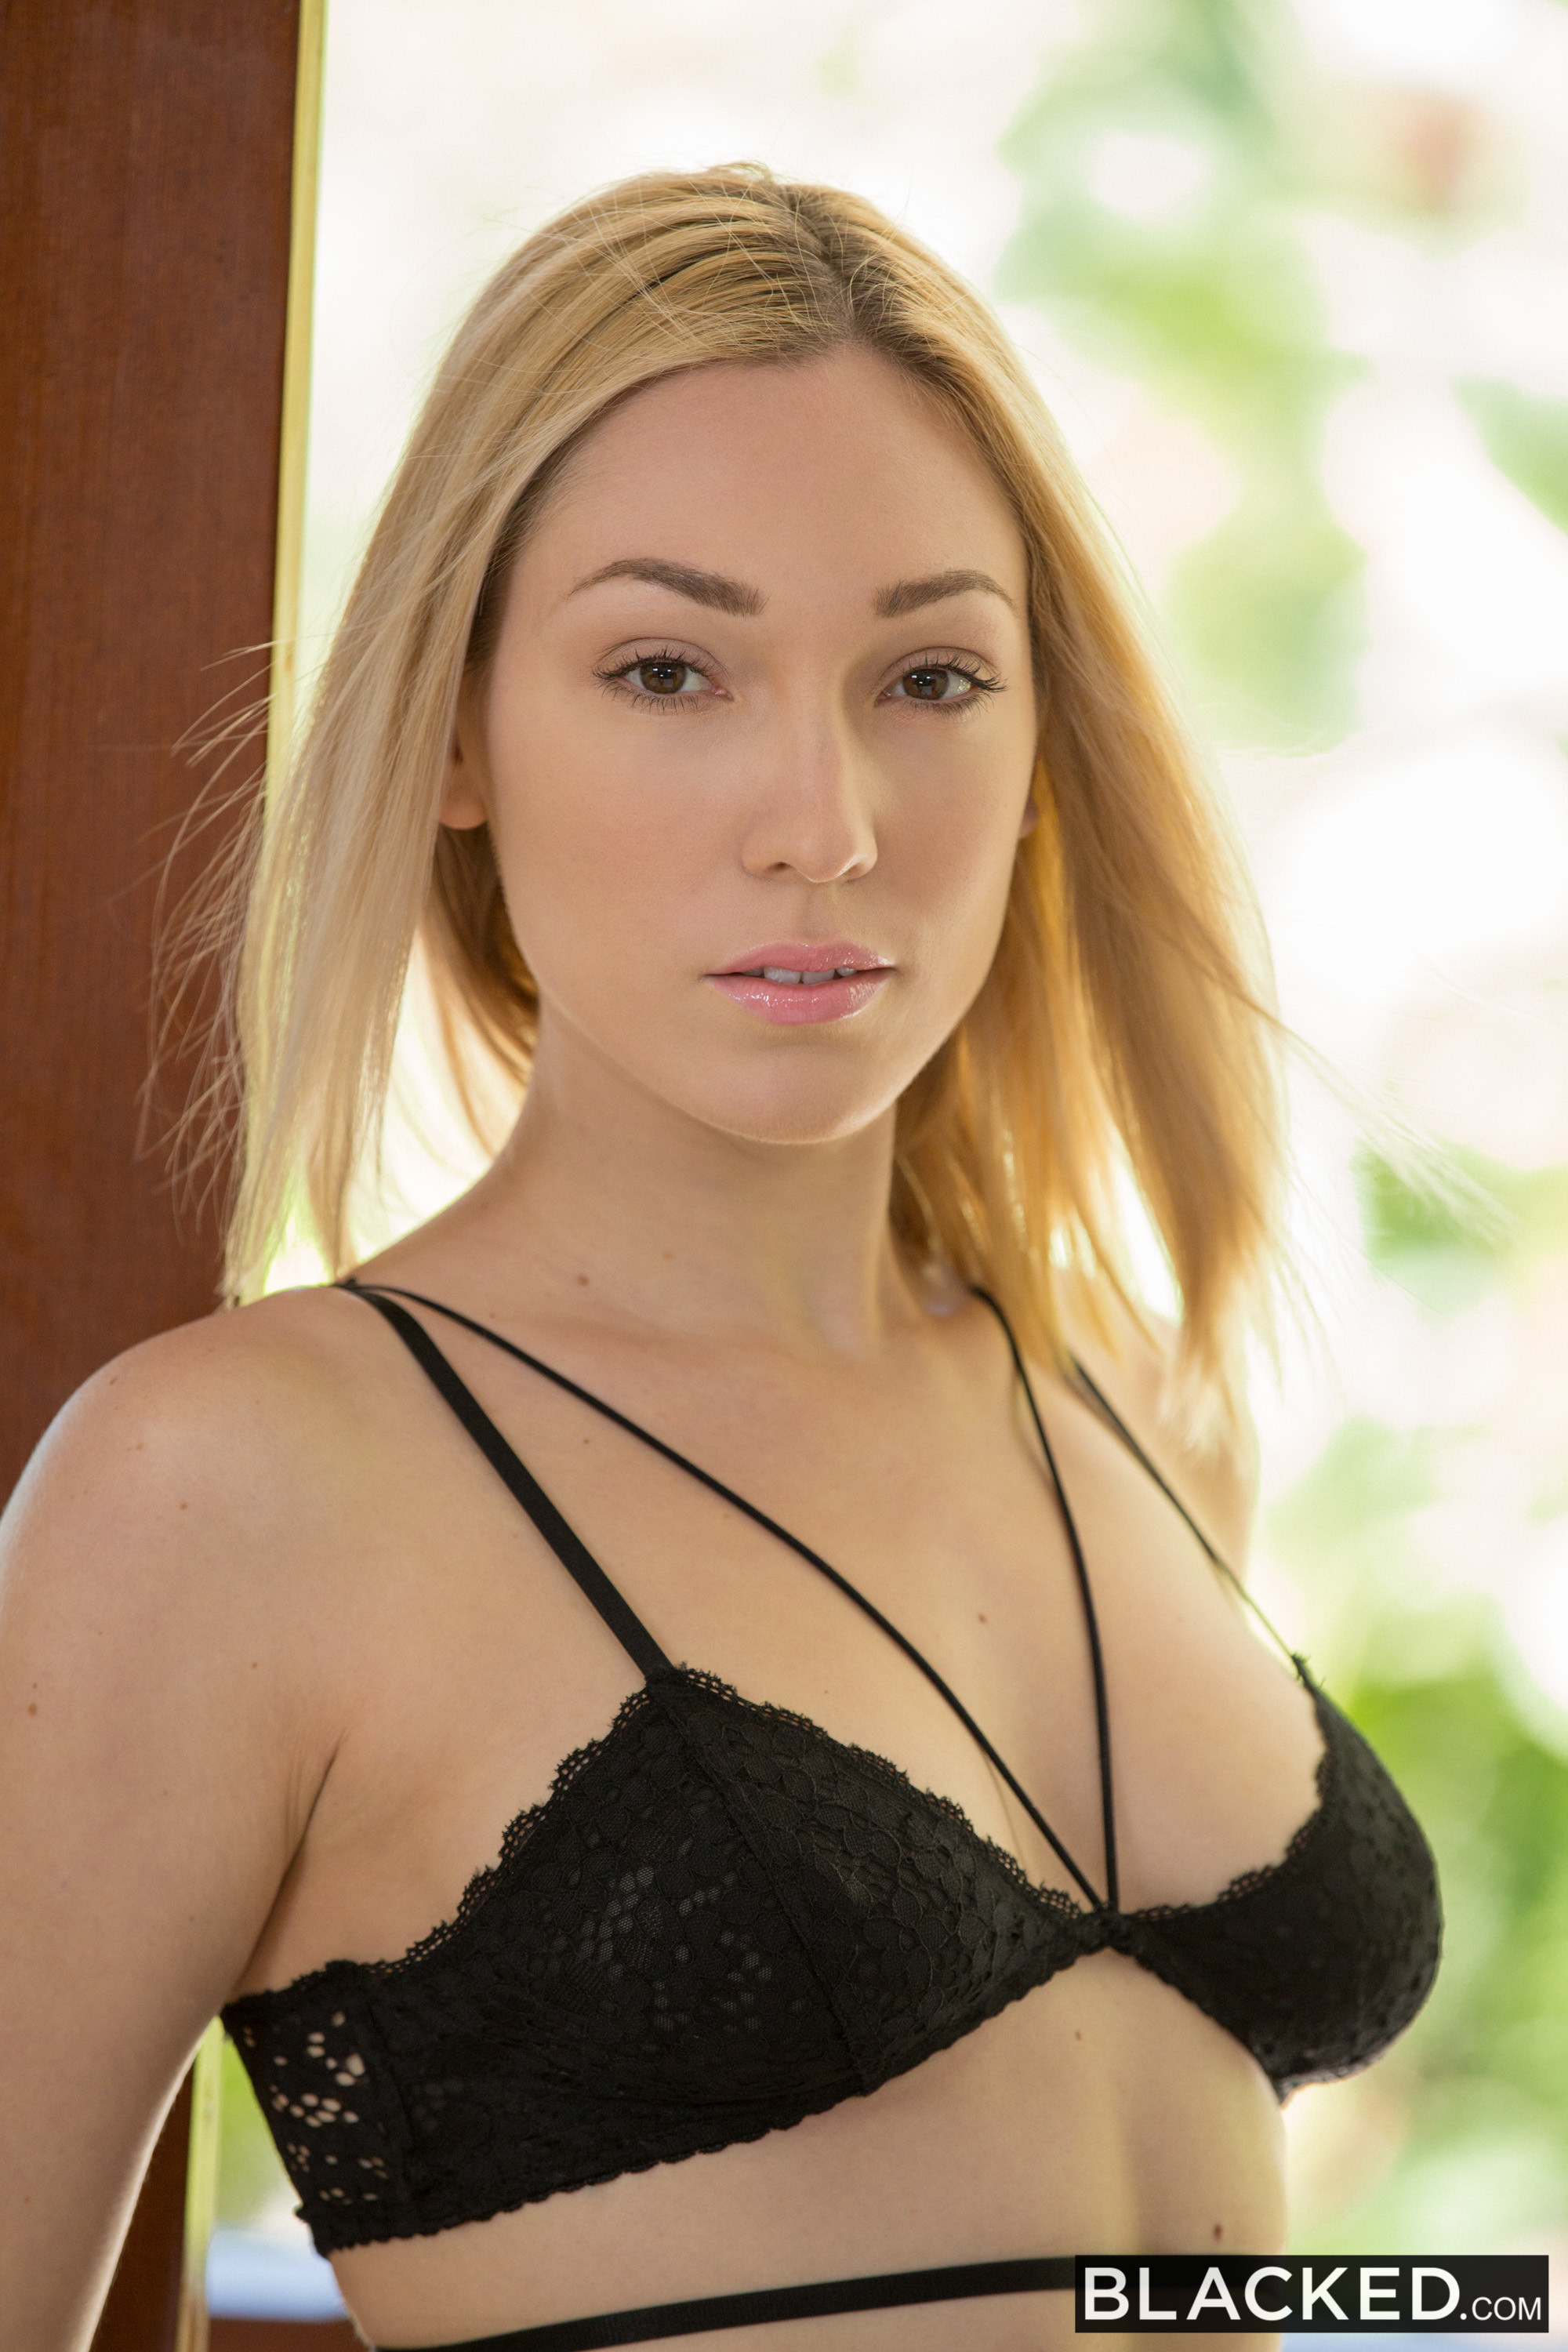 lily-labeau-blonde-nude-black-lingerie-blacked-01